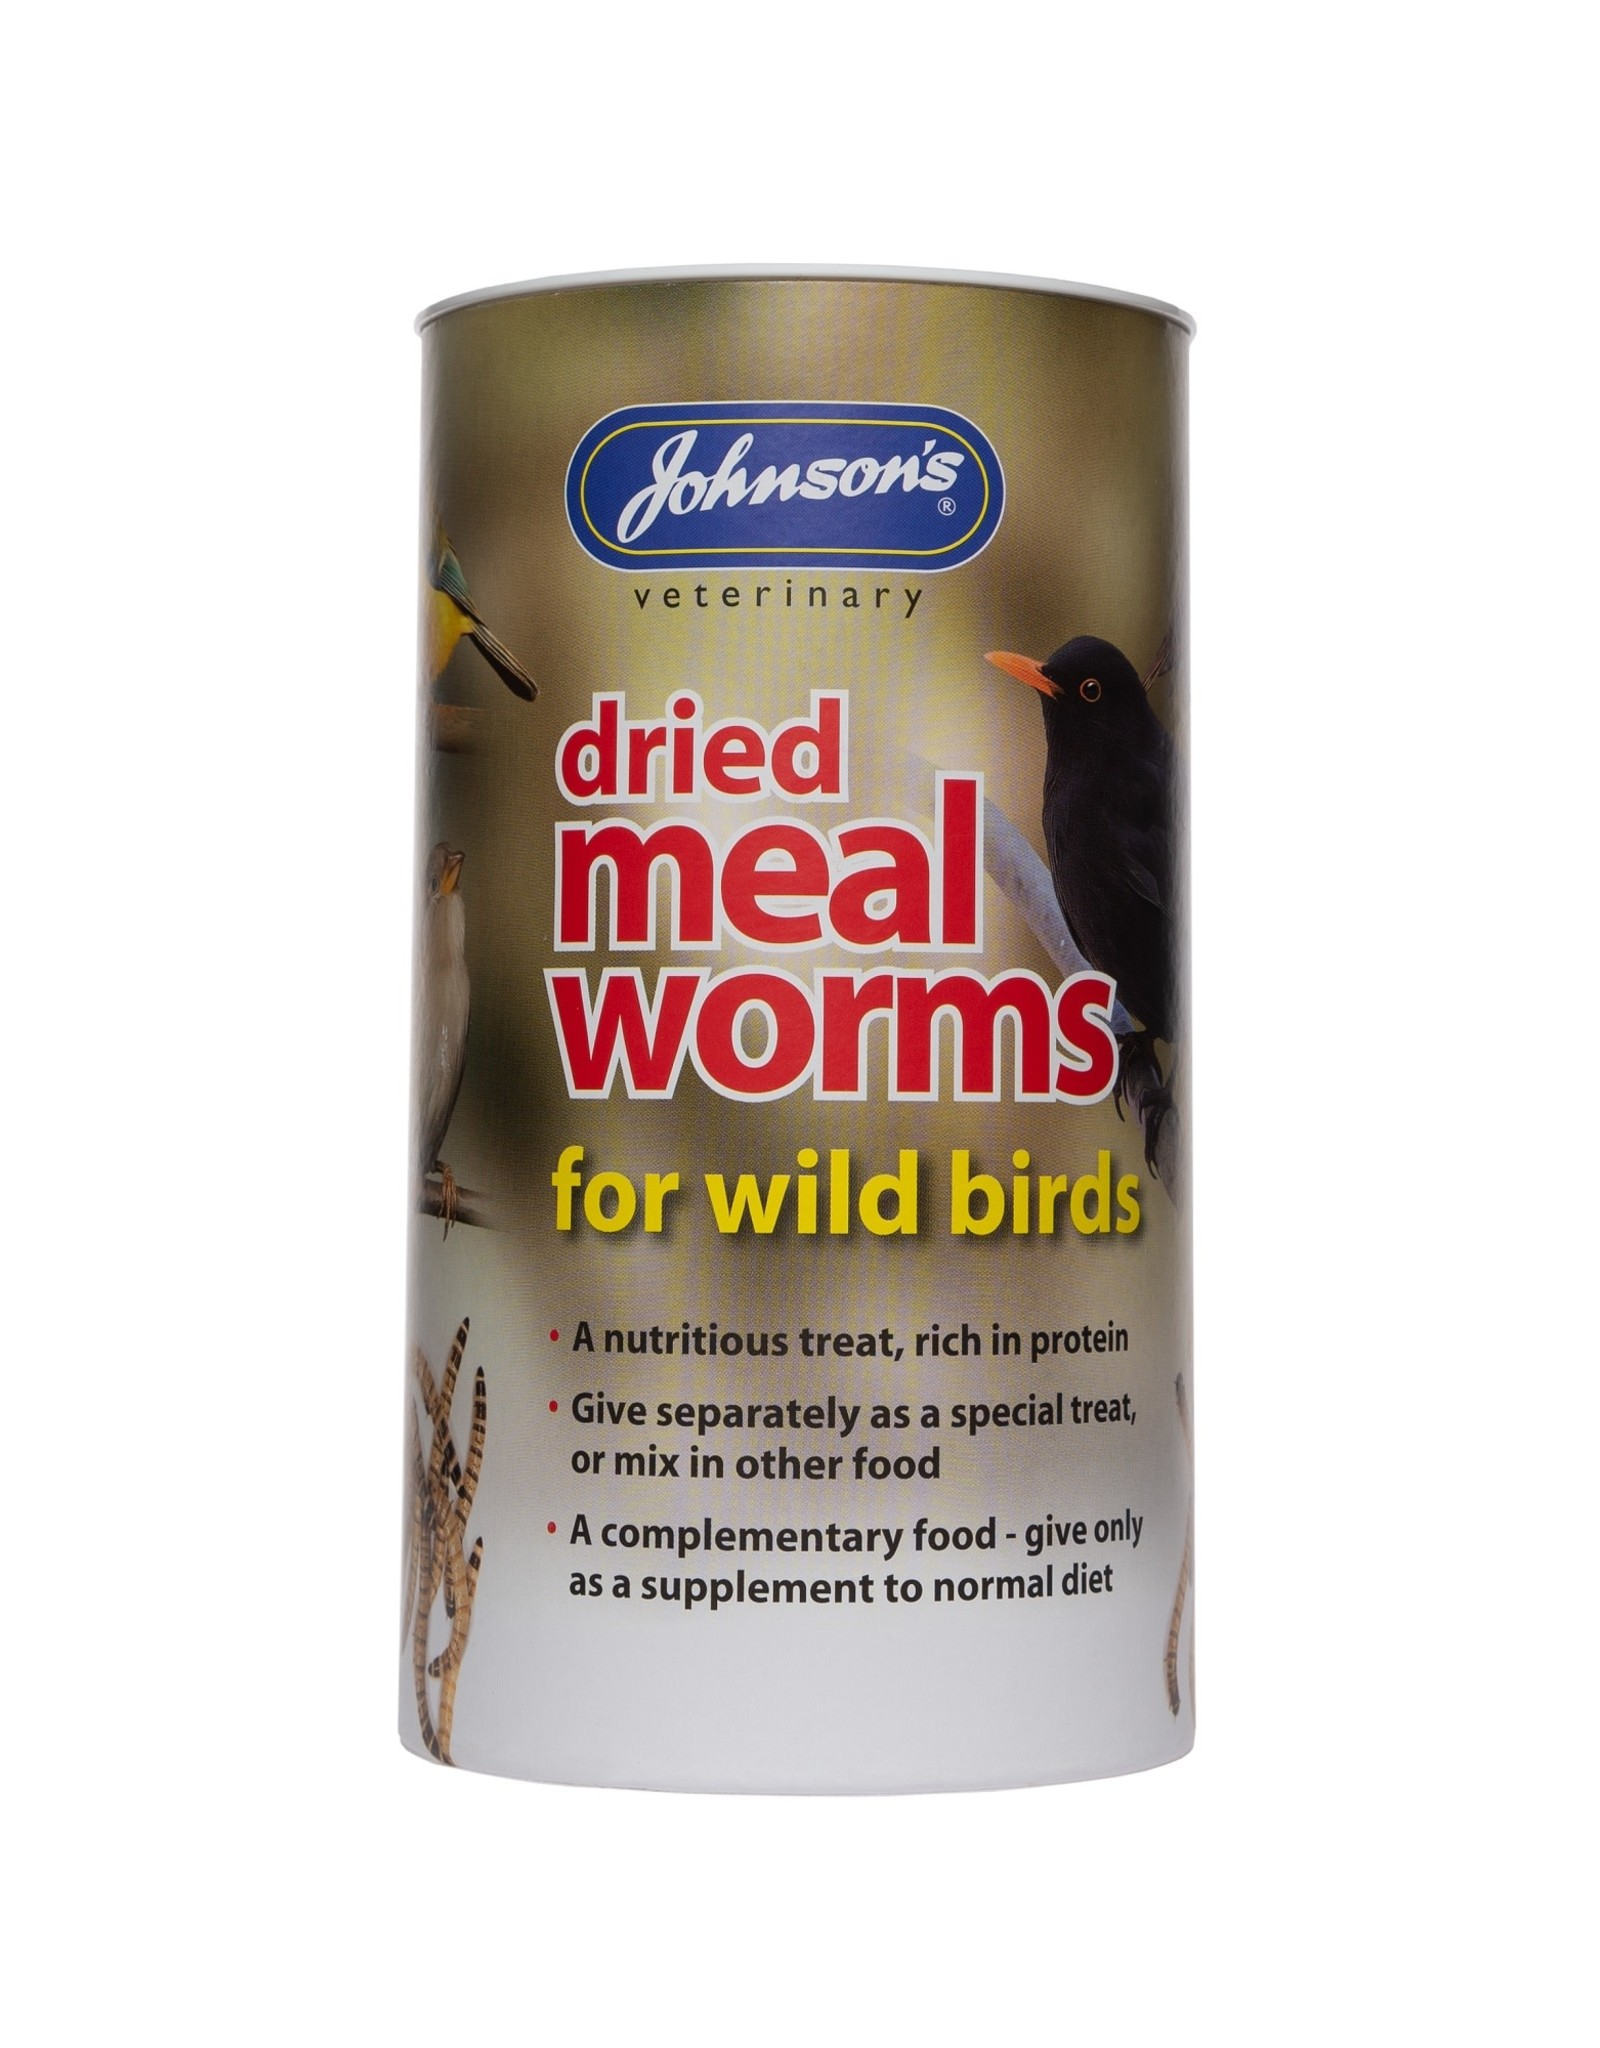 Johnsons Veterinary Dried Mealworms for Wild Birds, 100g